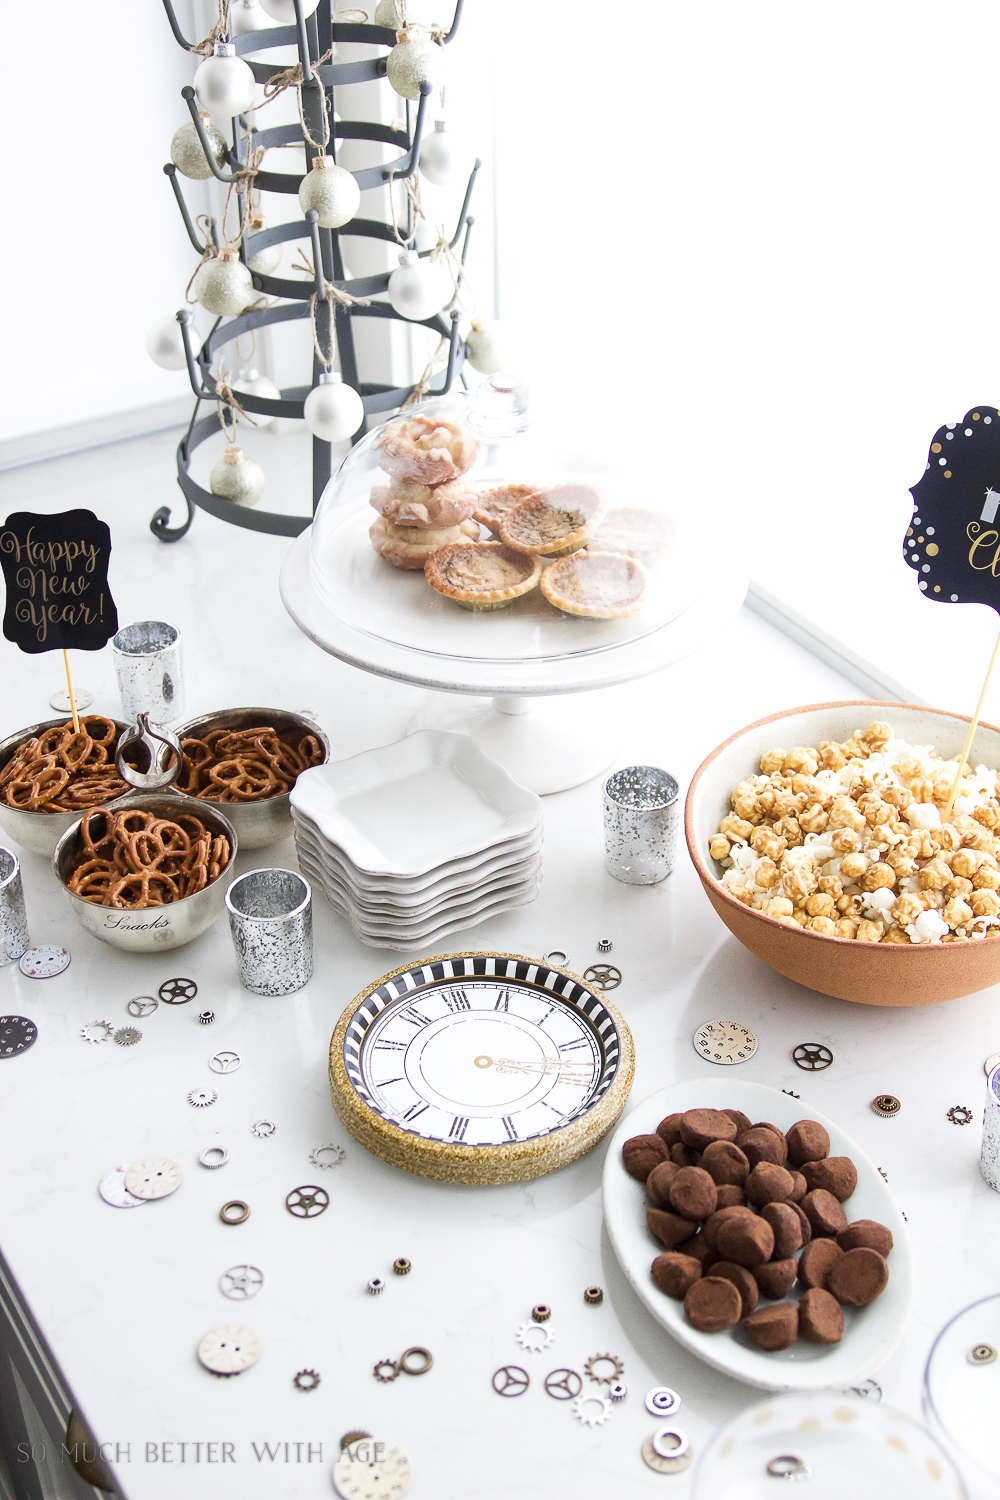 A New Year's Eve Party Bubbly Bar with Party Tips / pretzels and baked goods on table - So Much Better With Age